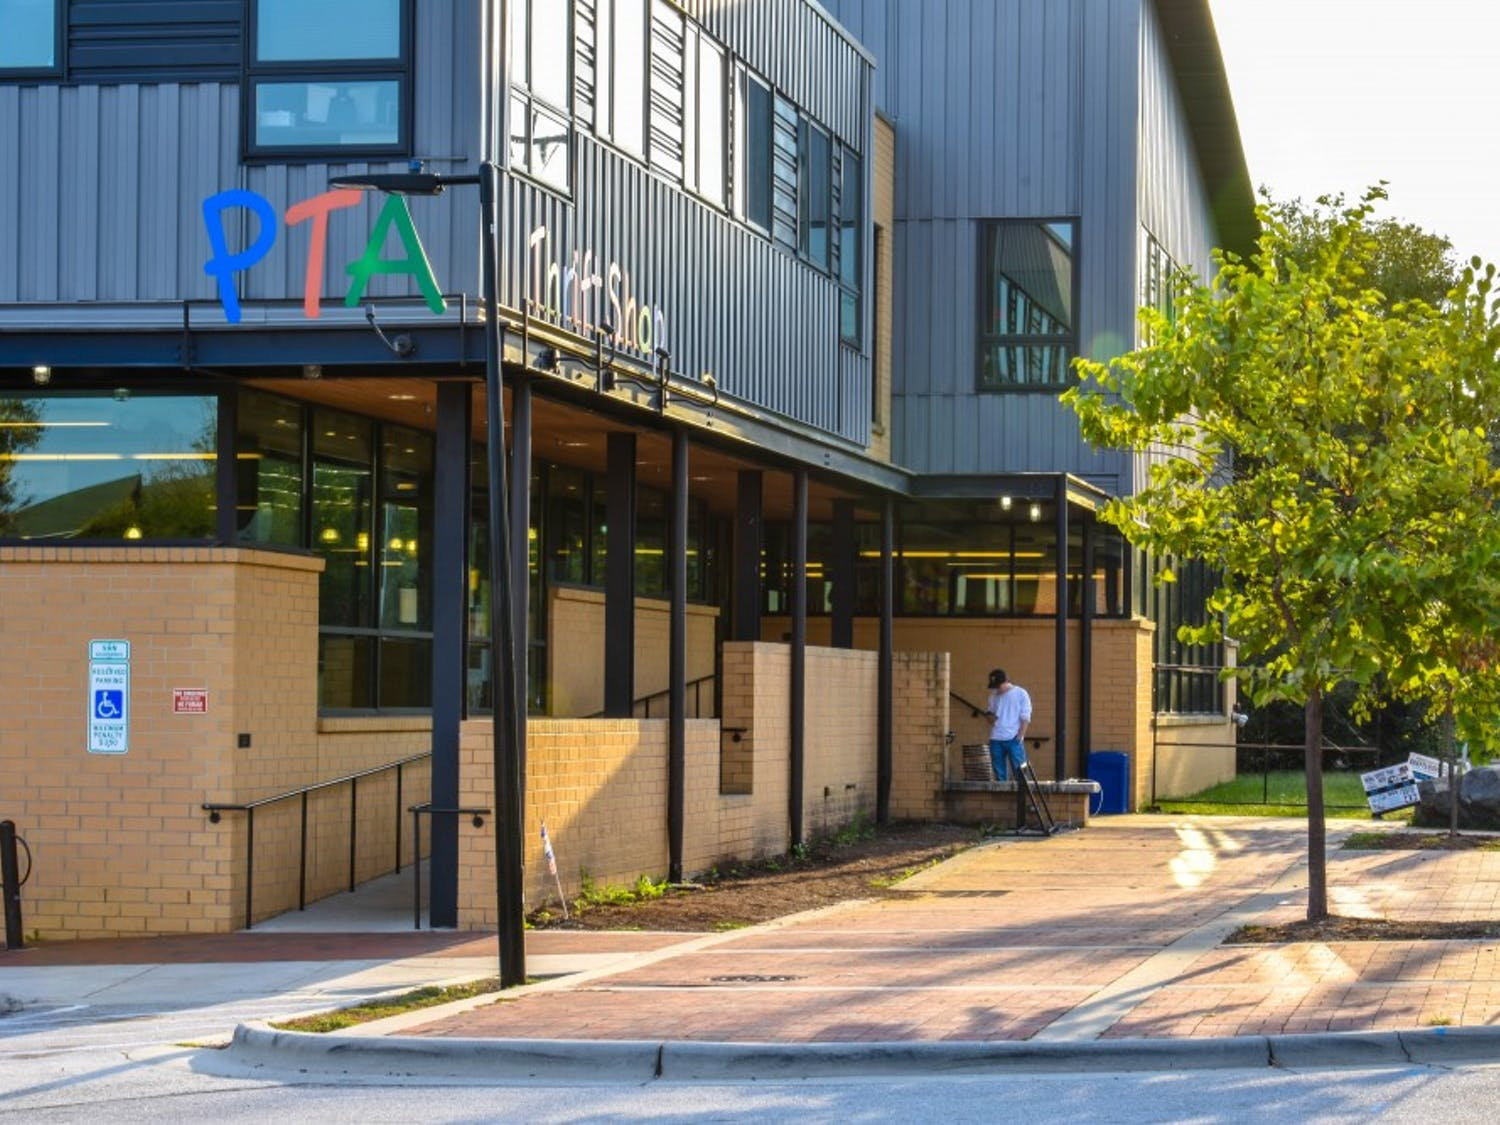 In November of 2019, the PTA Thrift Shop in Carrboro will officially change its name to CommunityWorx.